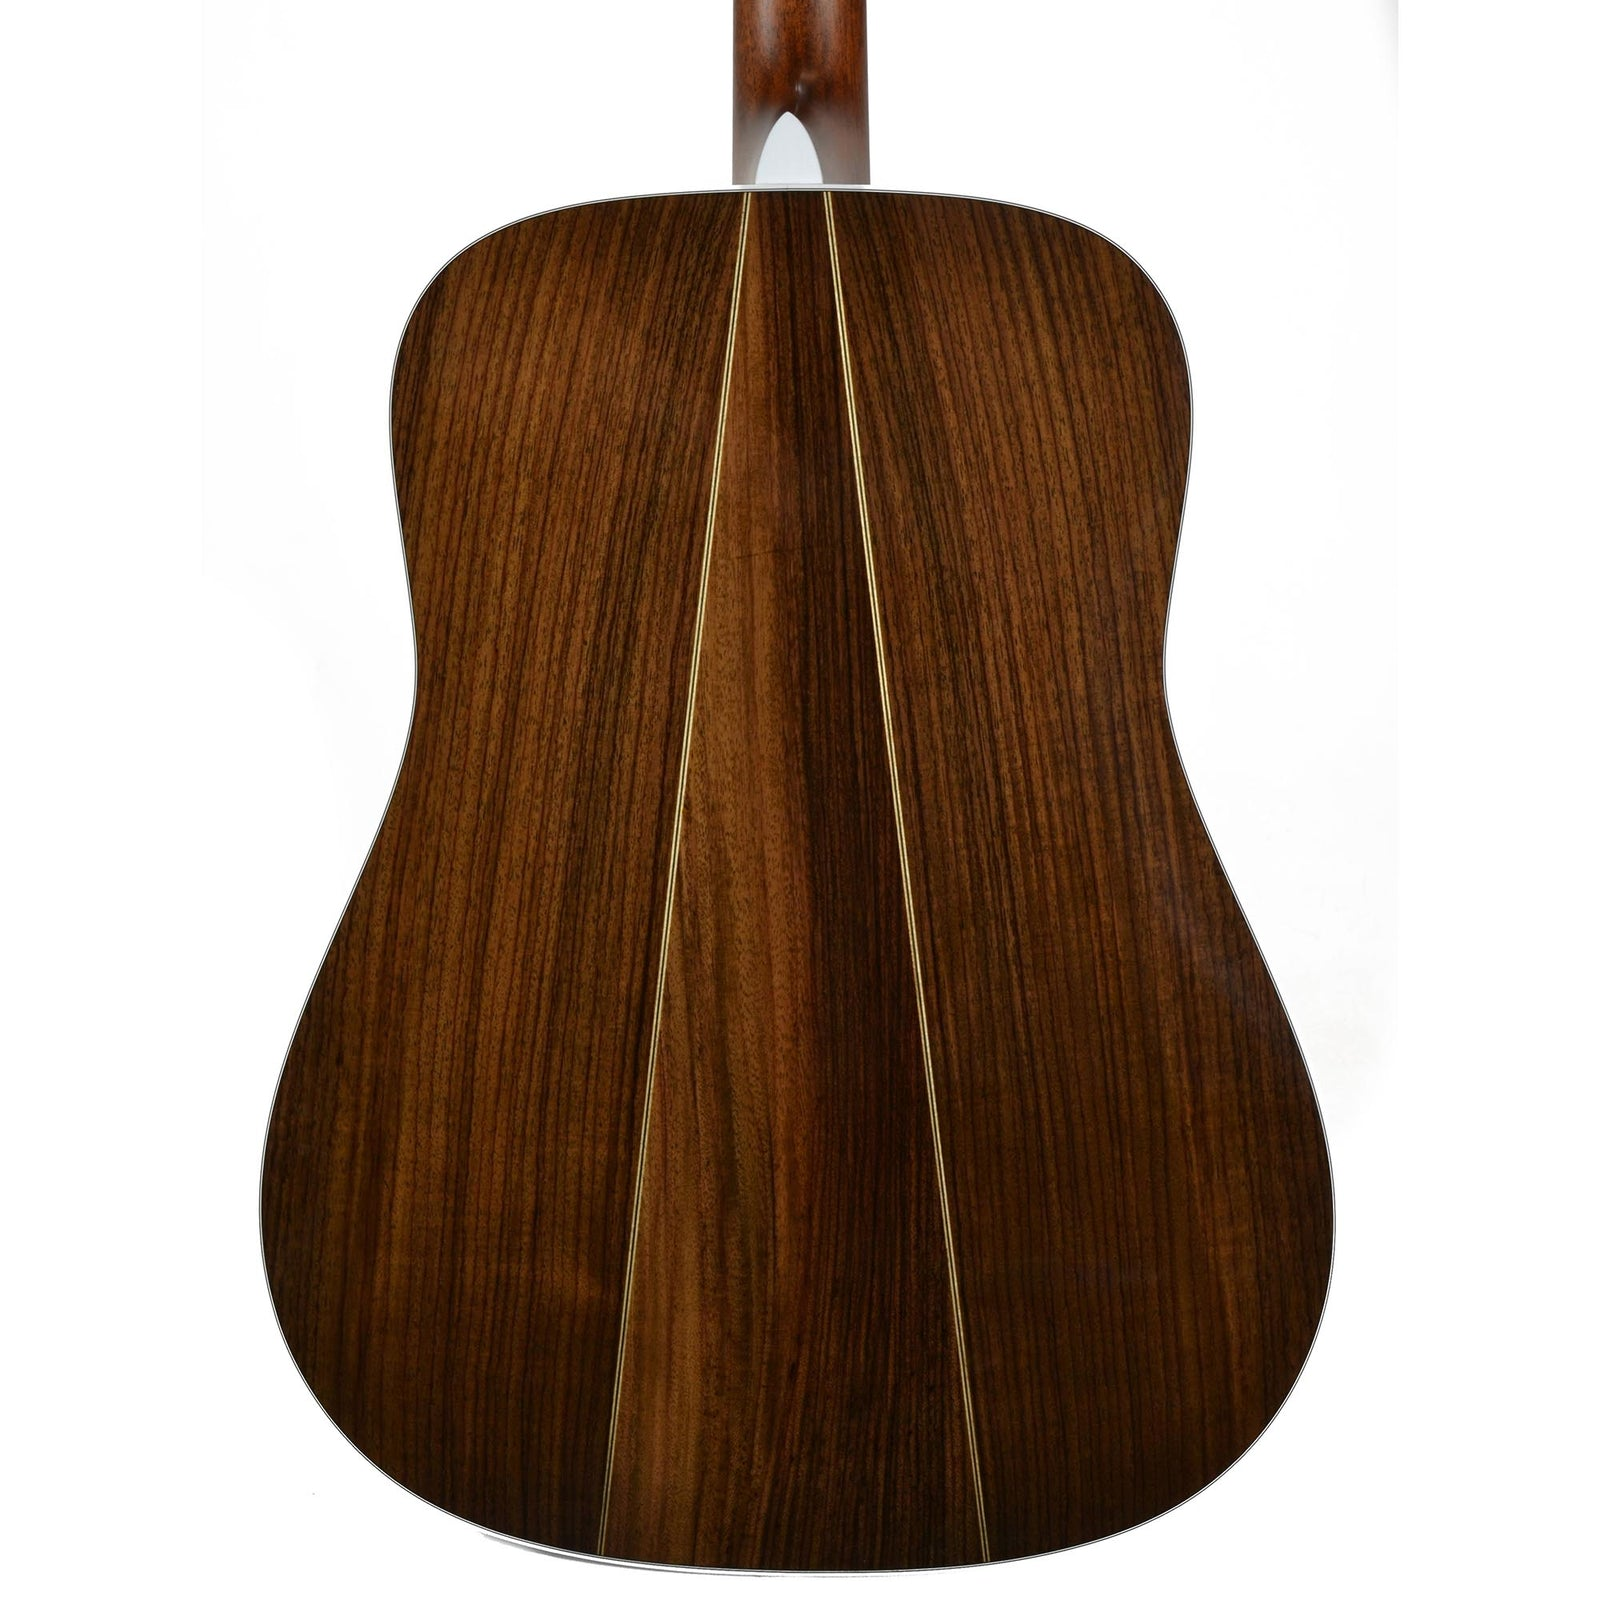 Martin D-35 Dreadnought - Used - Image: 2